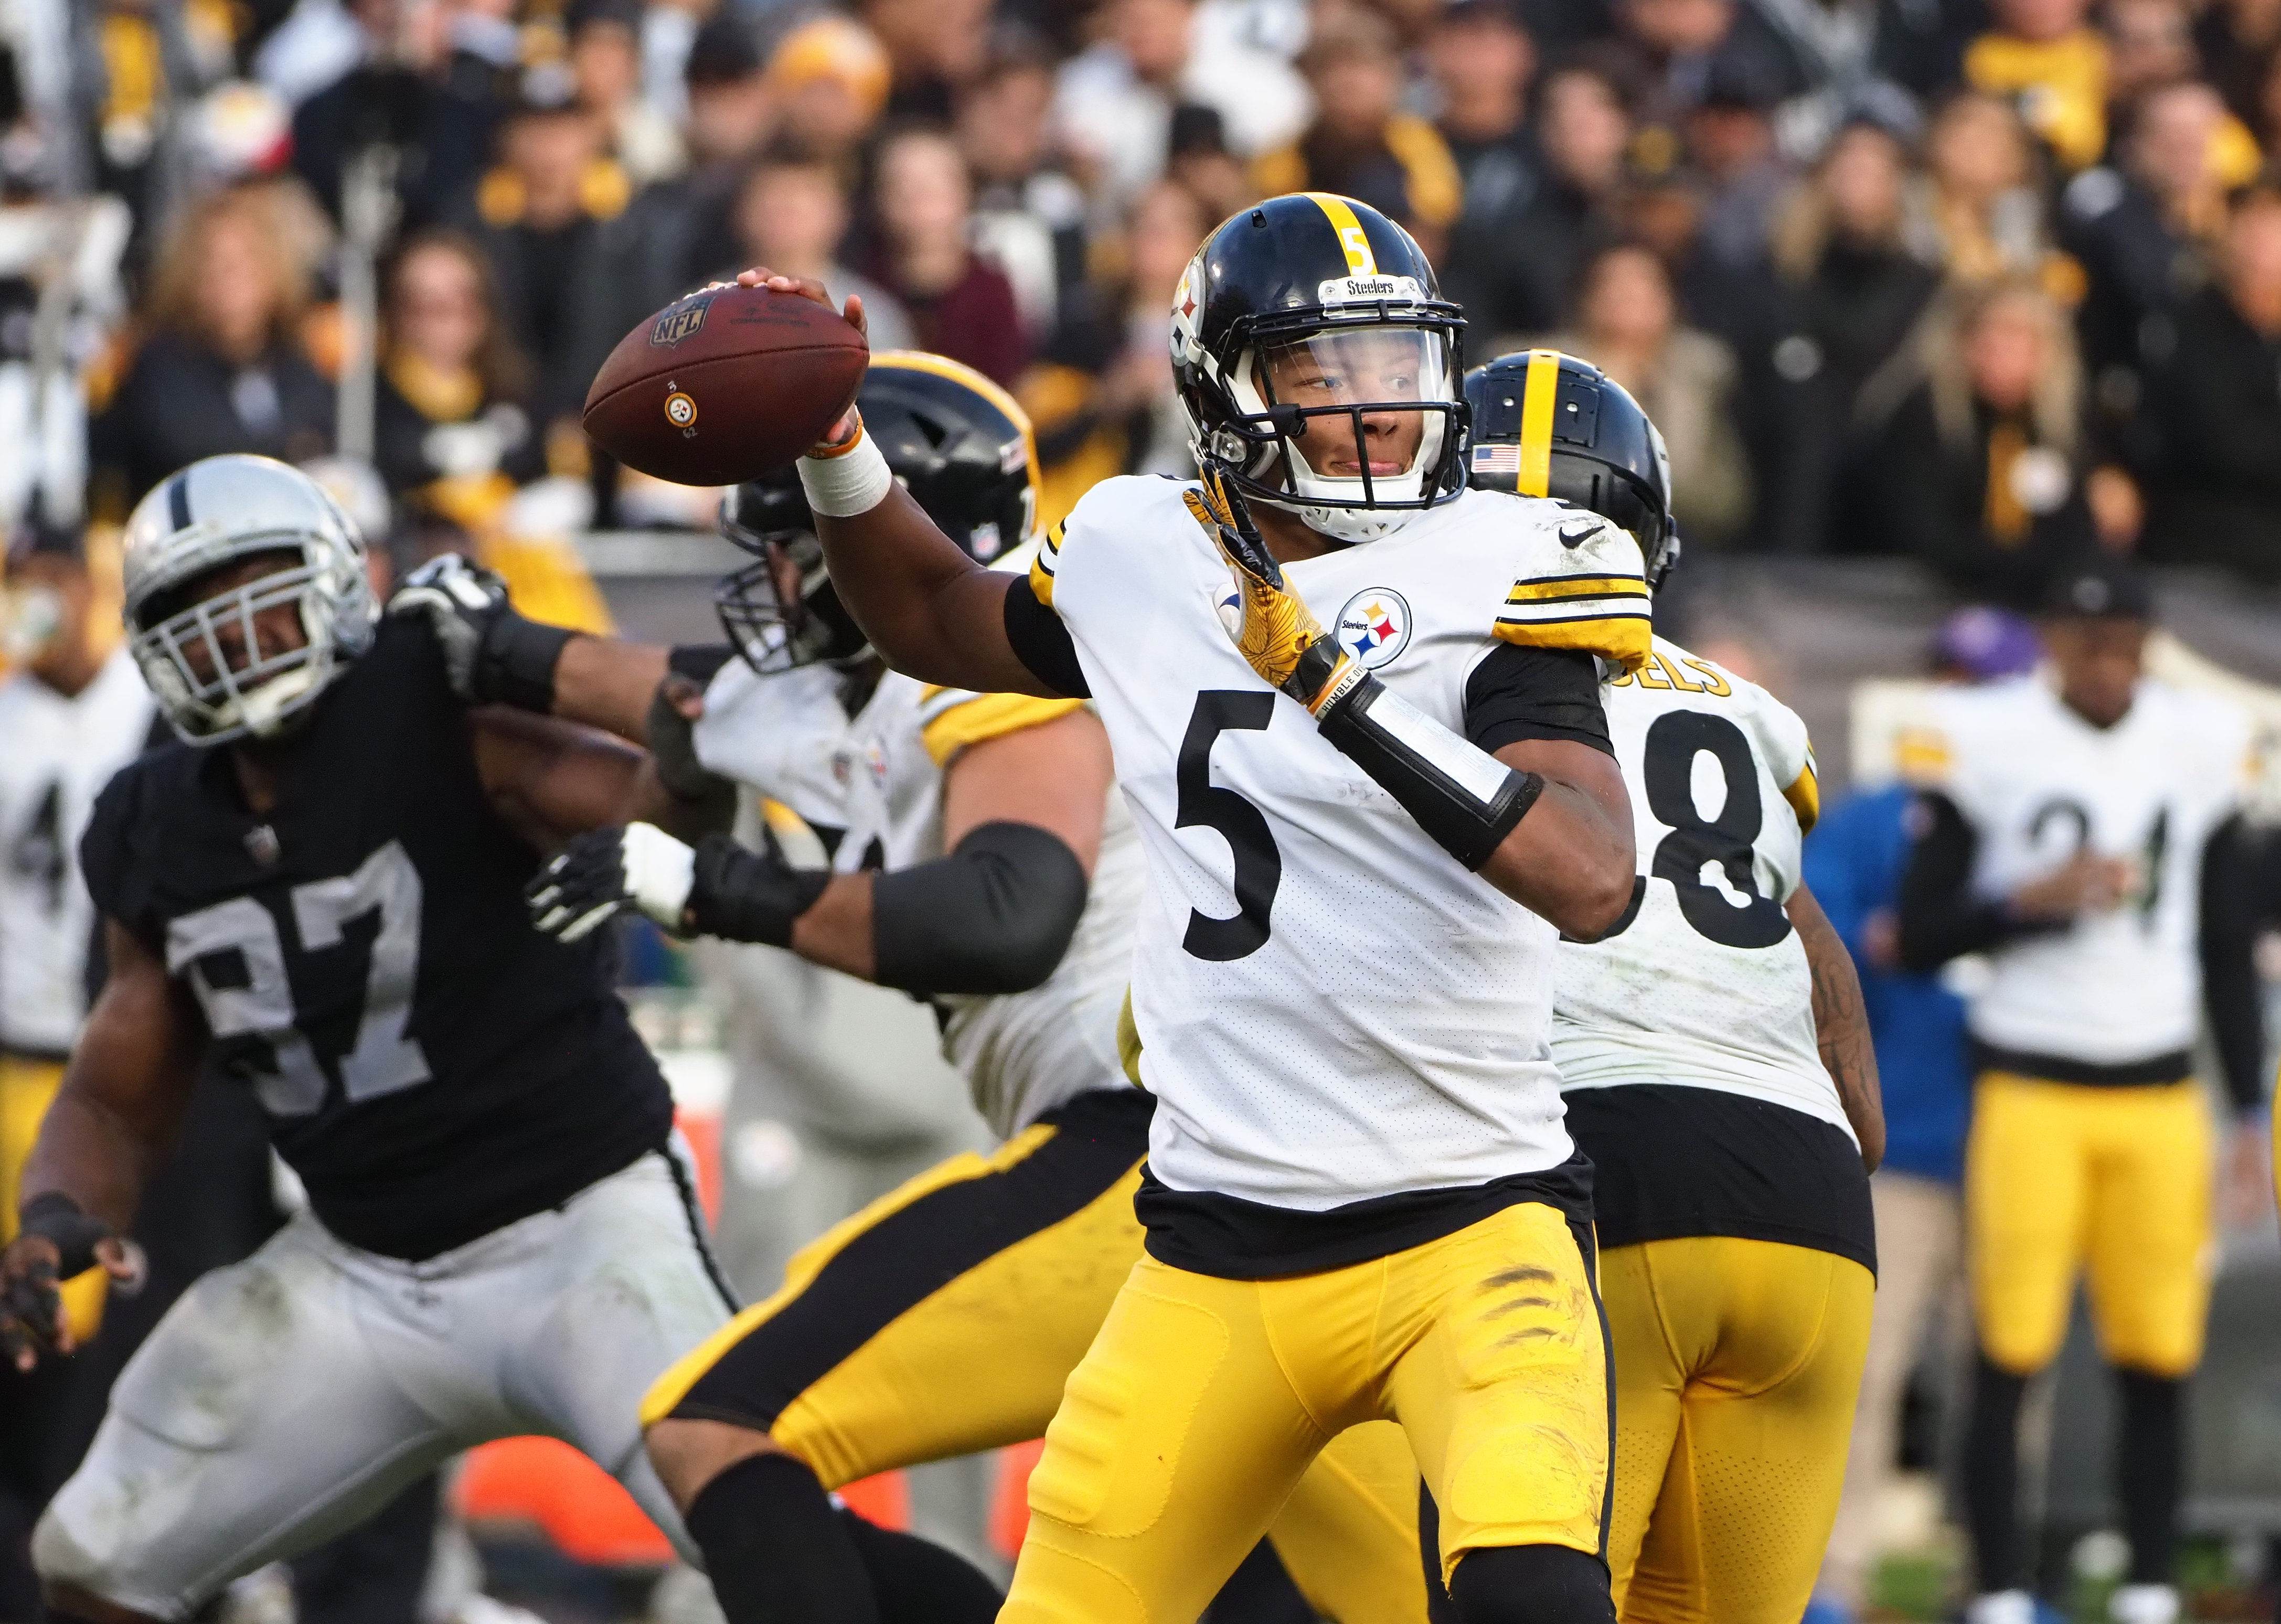 NFL: Pittsburgh Steelers at Oakland Raiders